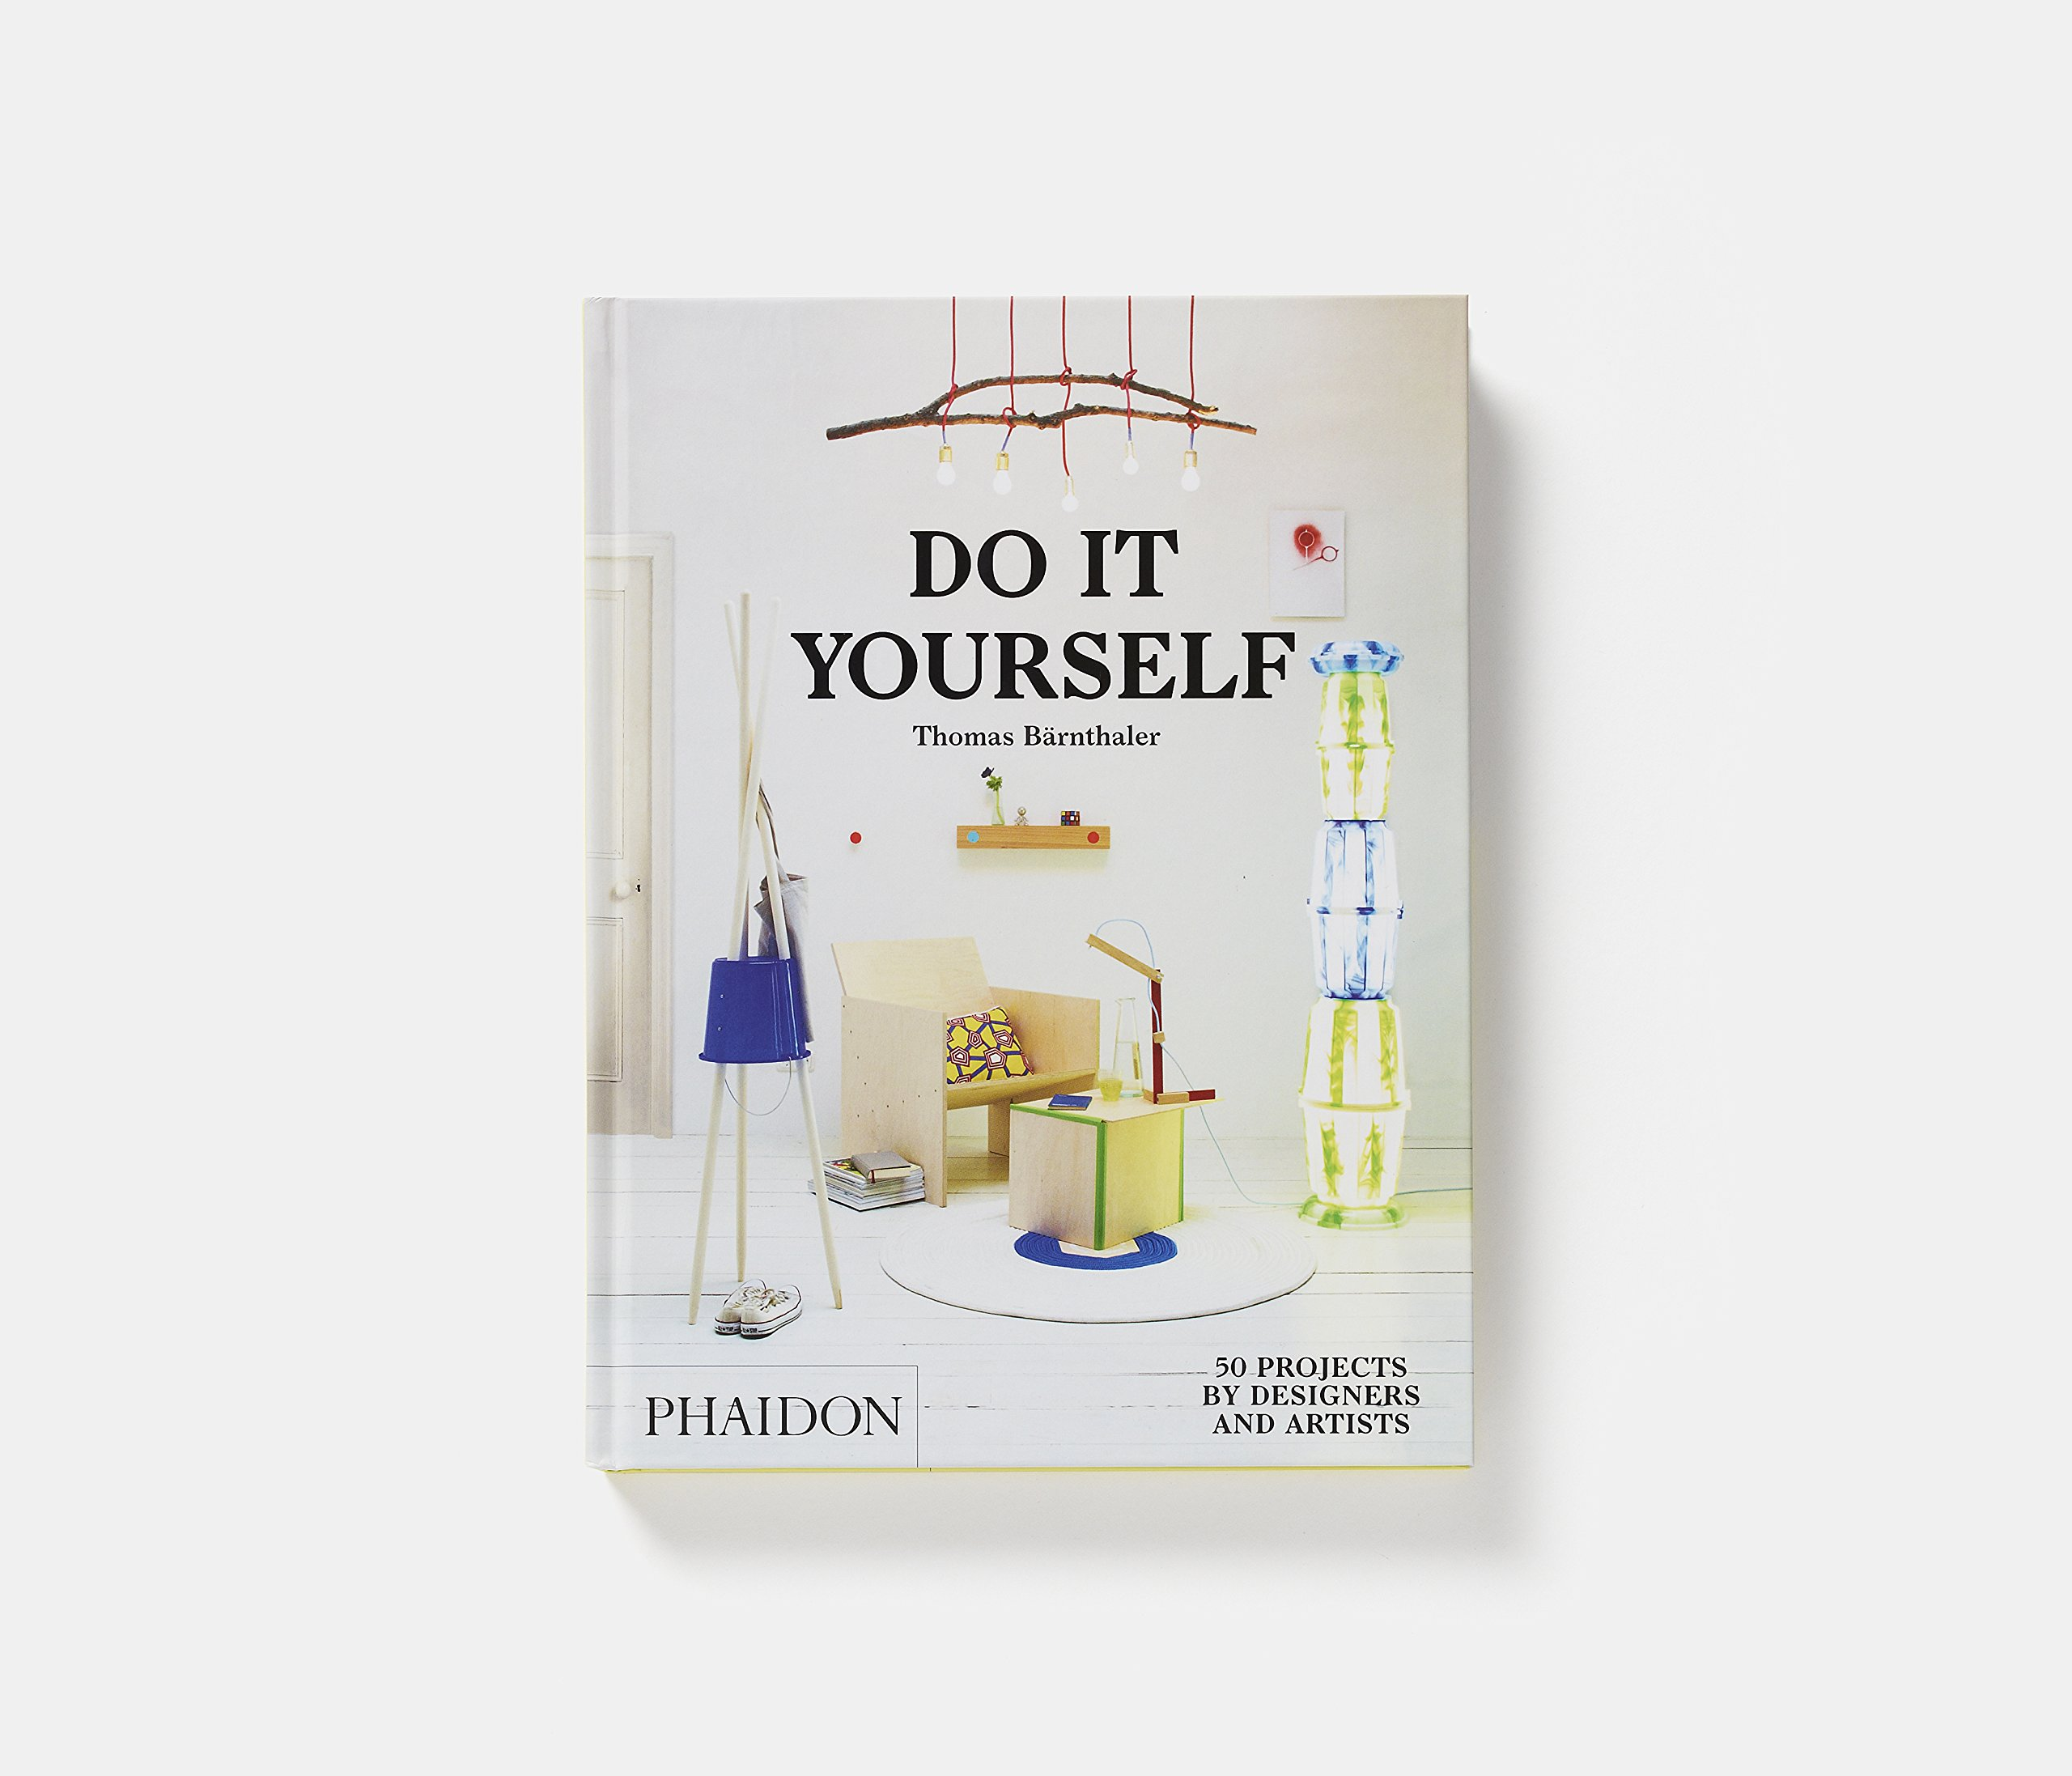 Do it yourself 50 projects by designers and artists thomas do it yourself 50 projects by designers and artists thomas brnthaler 9780714870199 amazon books solutioingenieria Gallery